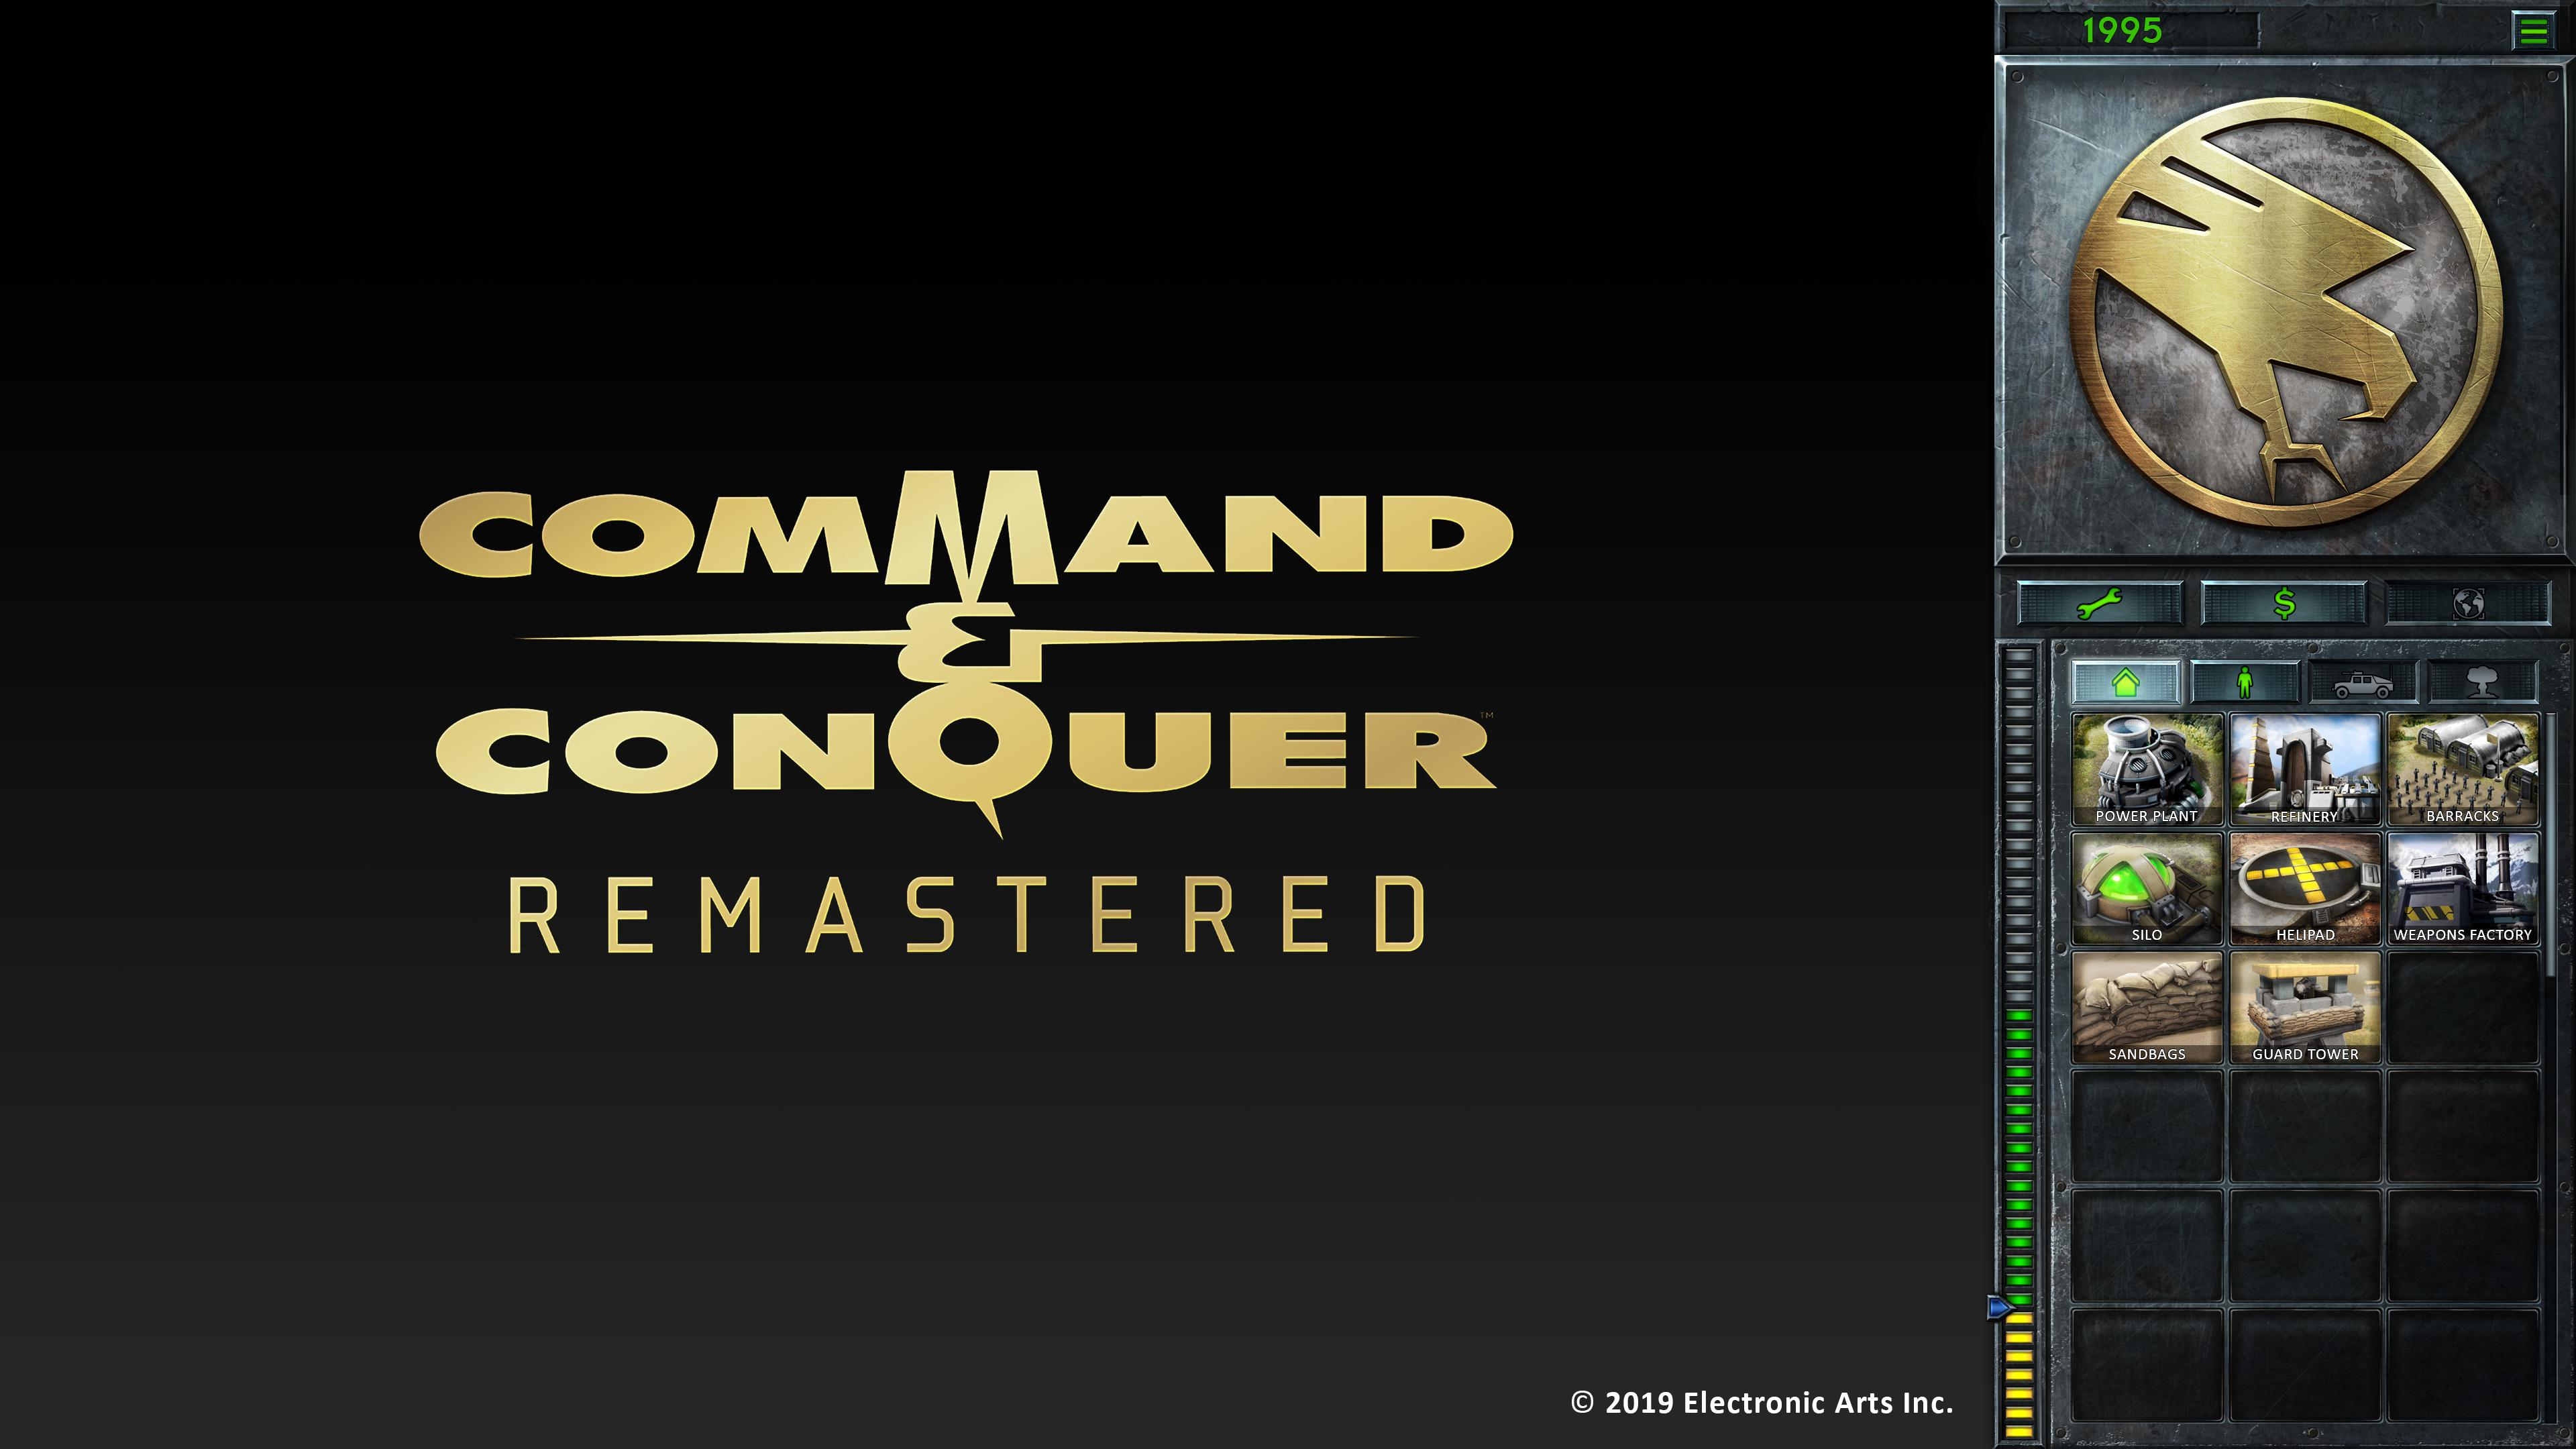 command-and-conquer-remastered-06-07-19-1.jpg